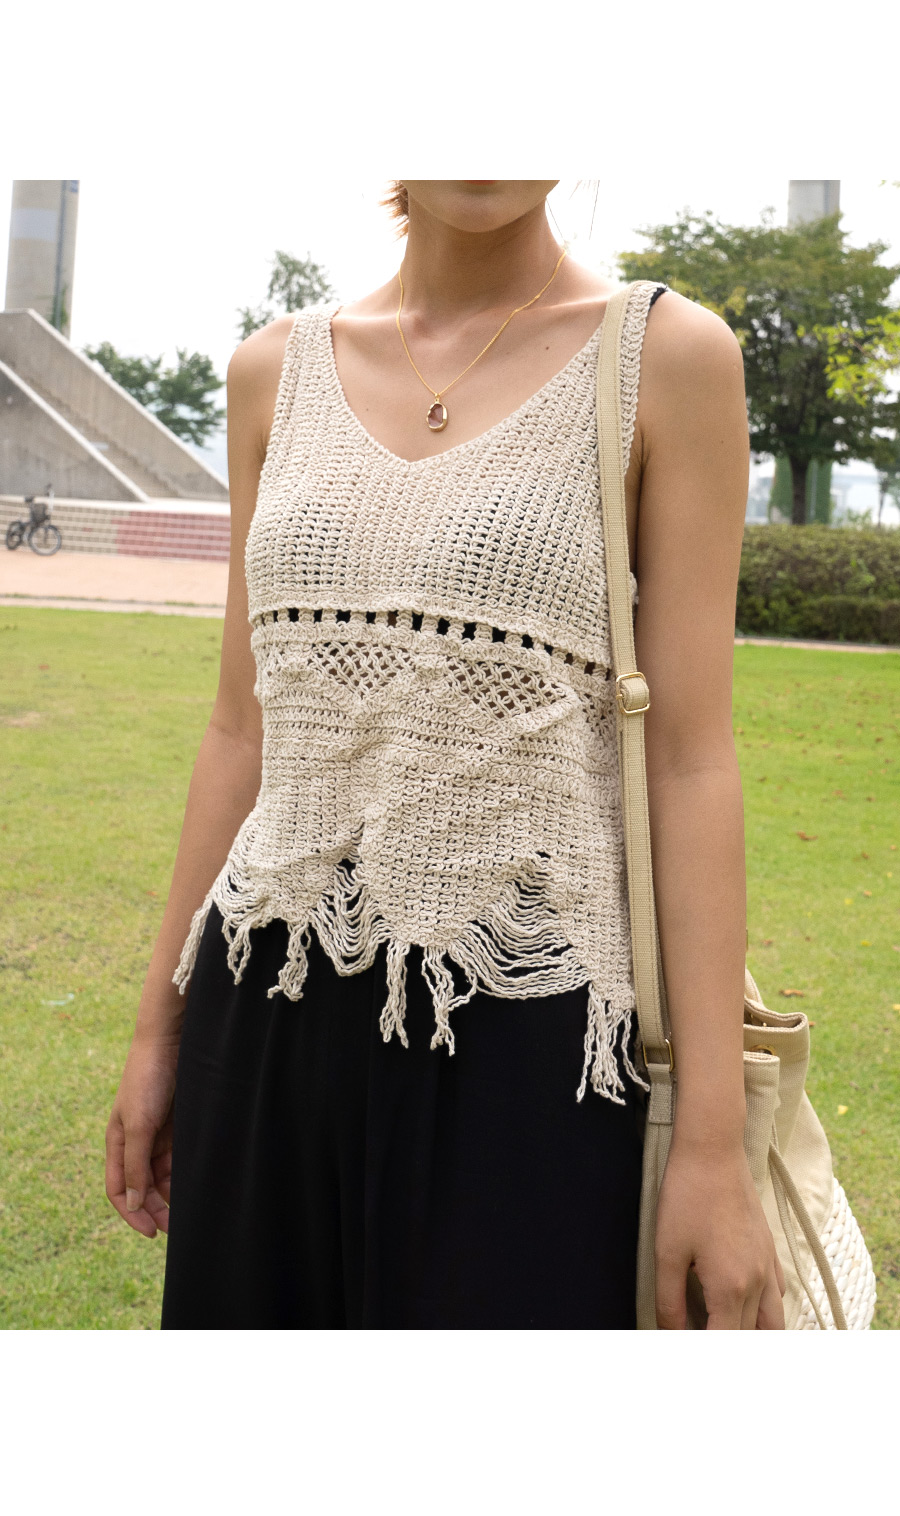 Round pant necklace